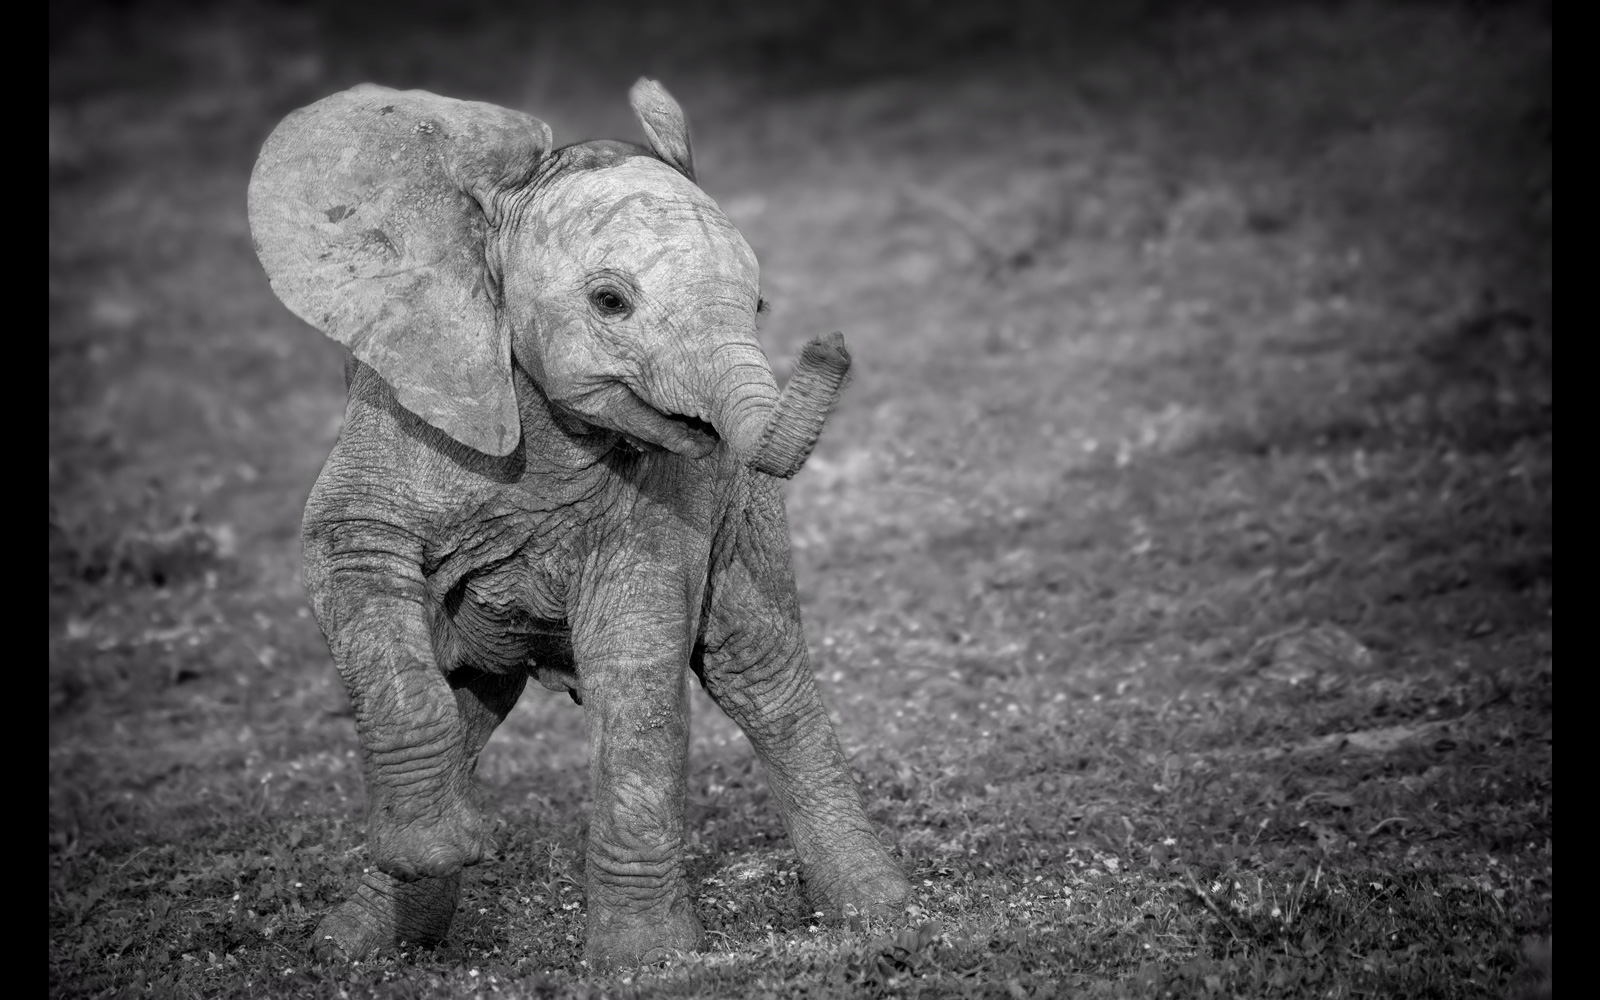 Playful elephant calf in Addo Elephant National Park, South Africa © Annette Heymans (Photographer of the Year 2018 entrant)